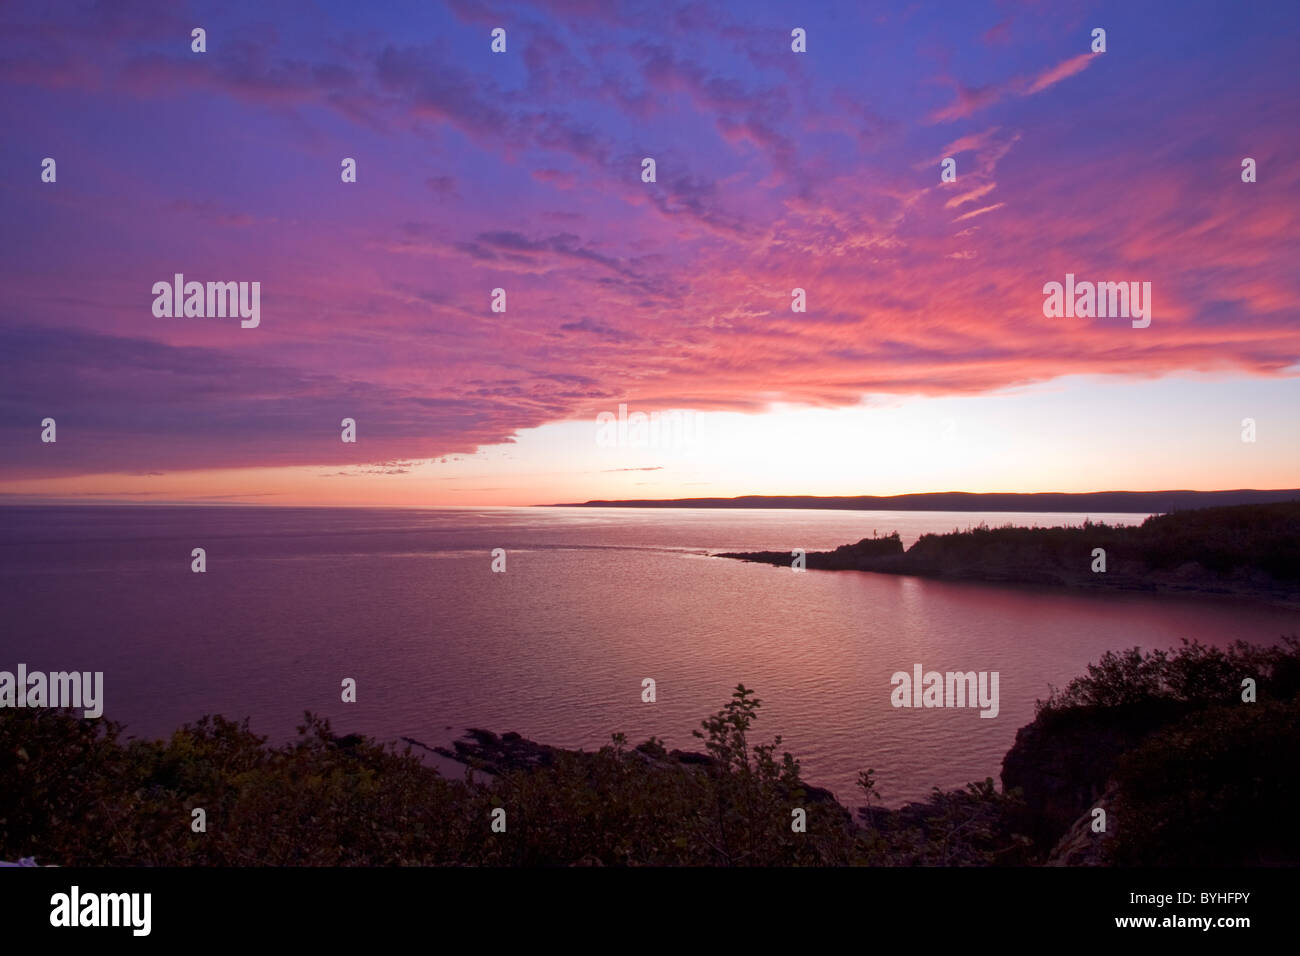 Sundown at The Bay of Fundy, Canada - Stock Image